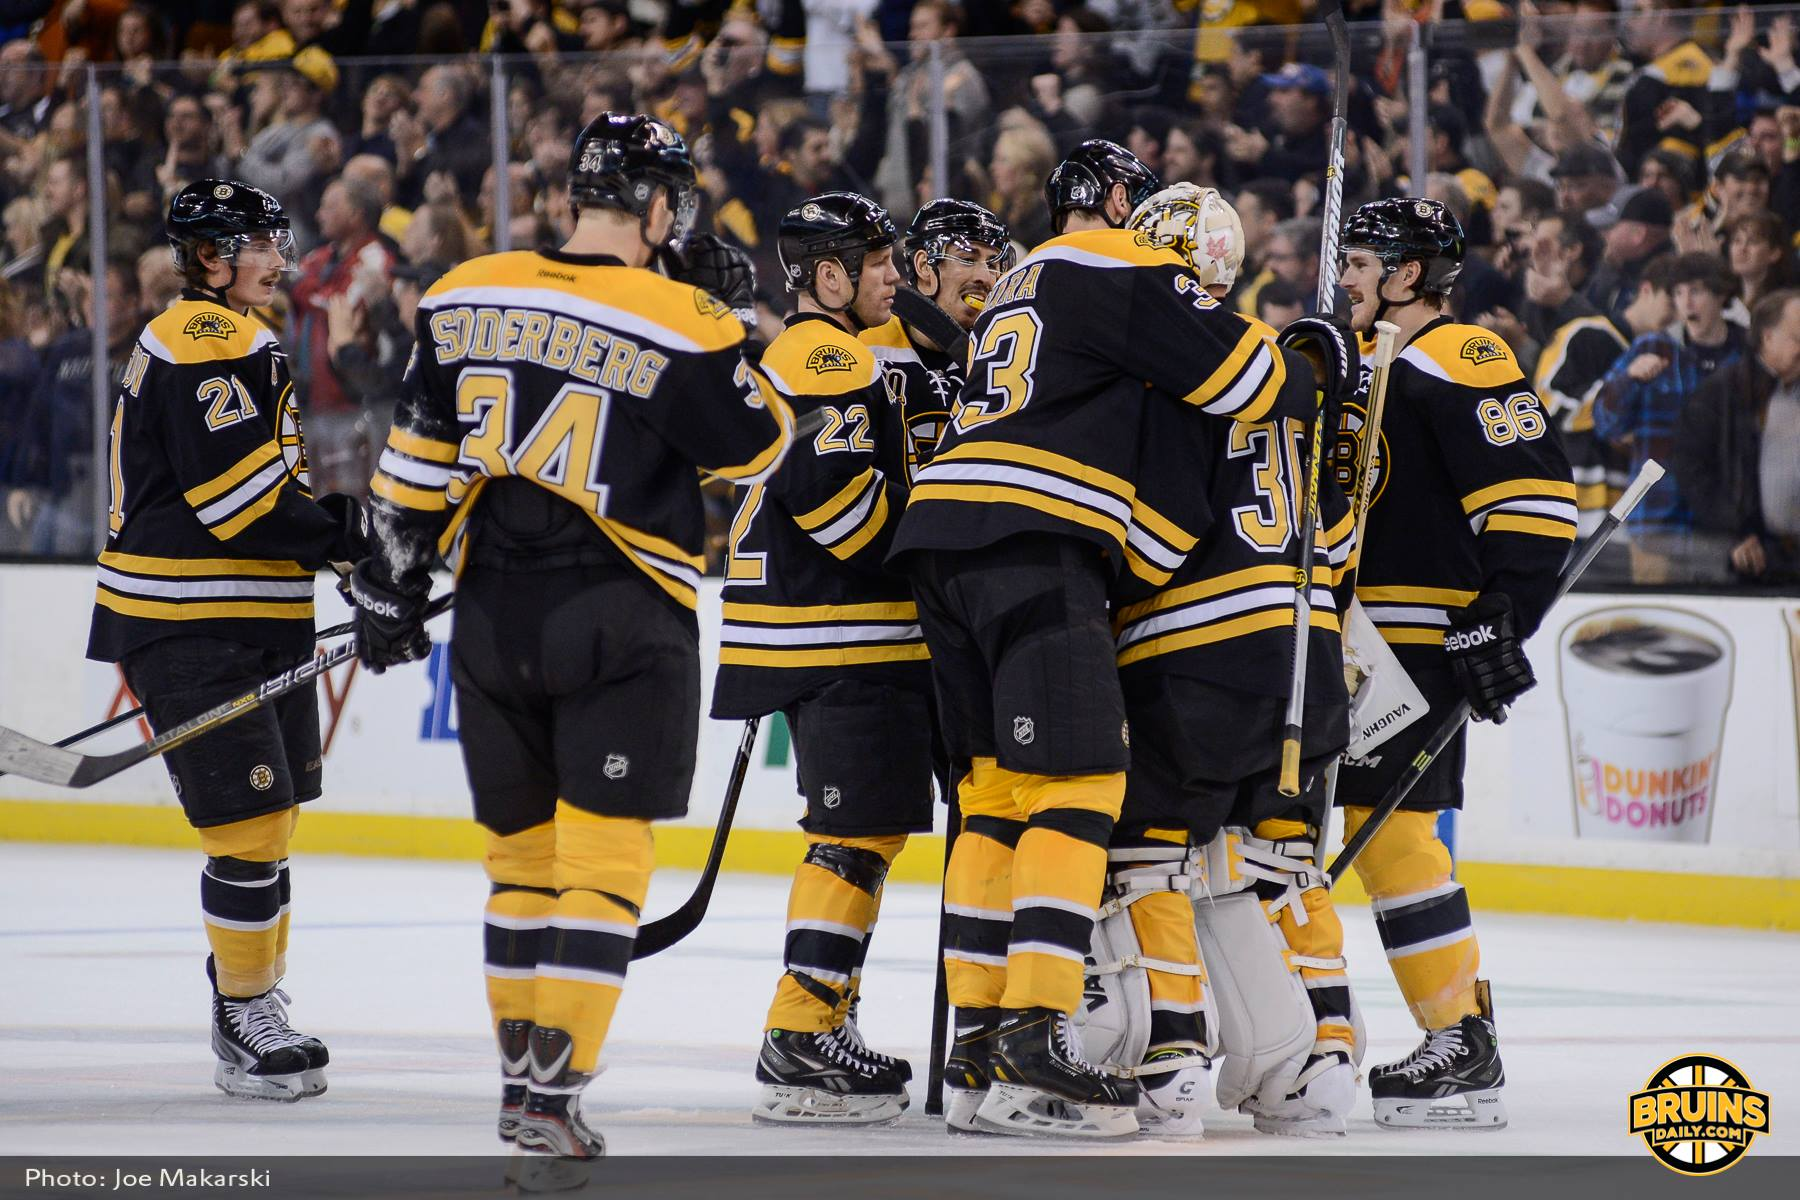 Top five hockey things to be thankful for - Bruins Daily ...Bruins Hockey